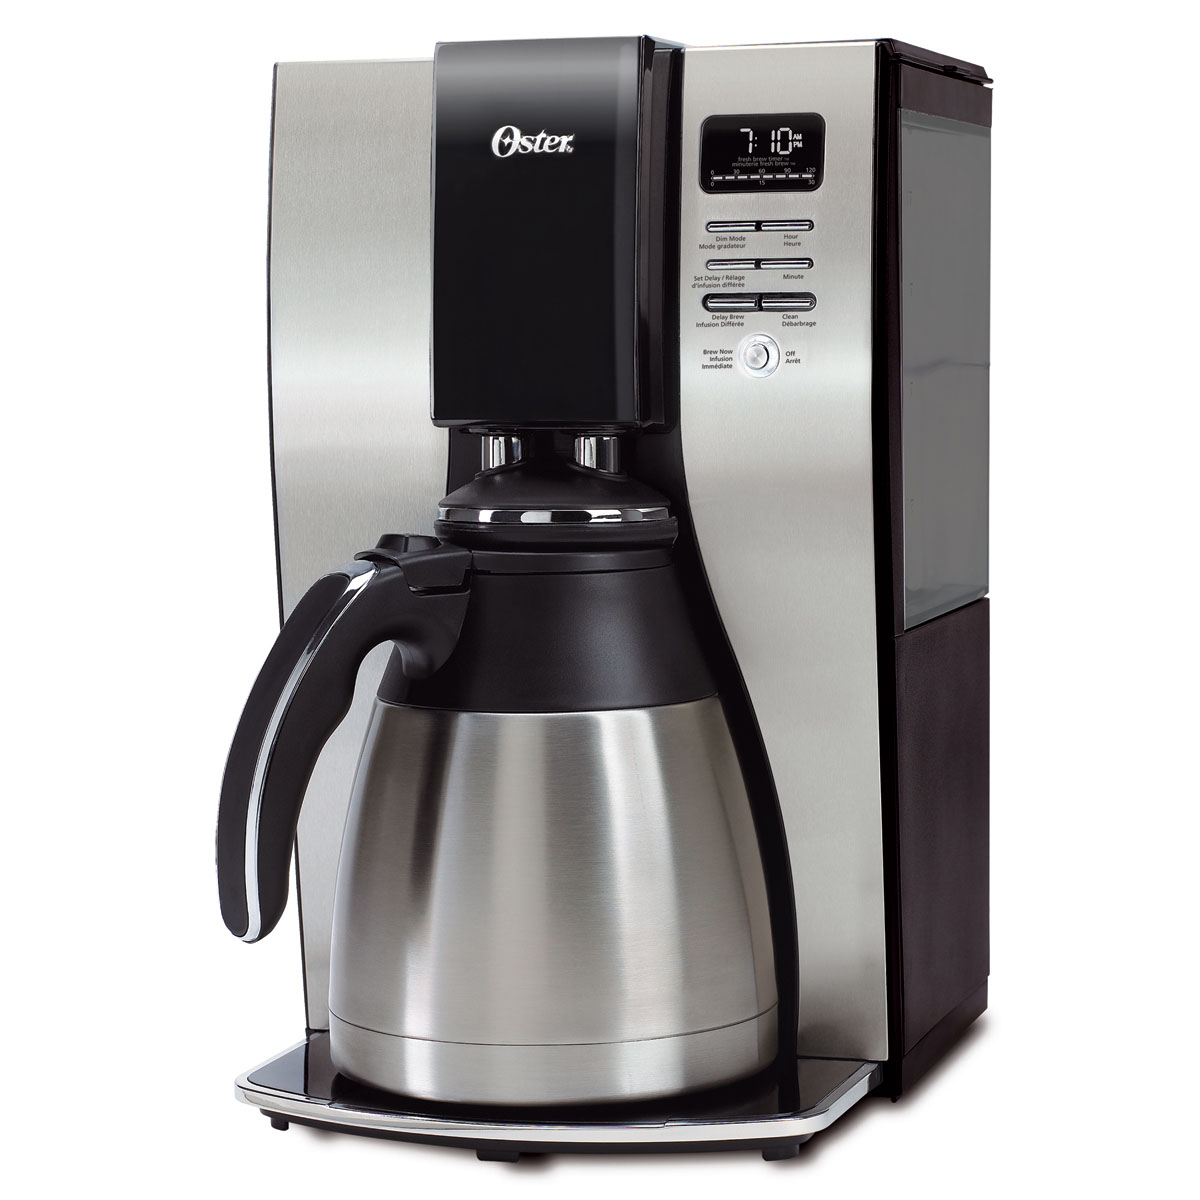 Oster Coffee Maker Delay Brew : Oster Optimal Brew Thermal Coffeemaker BVSTPSTX91-033 / -33A / -033-1CT Parts Oster Canada